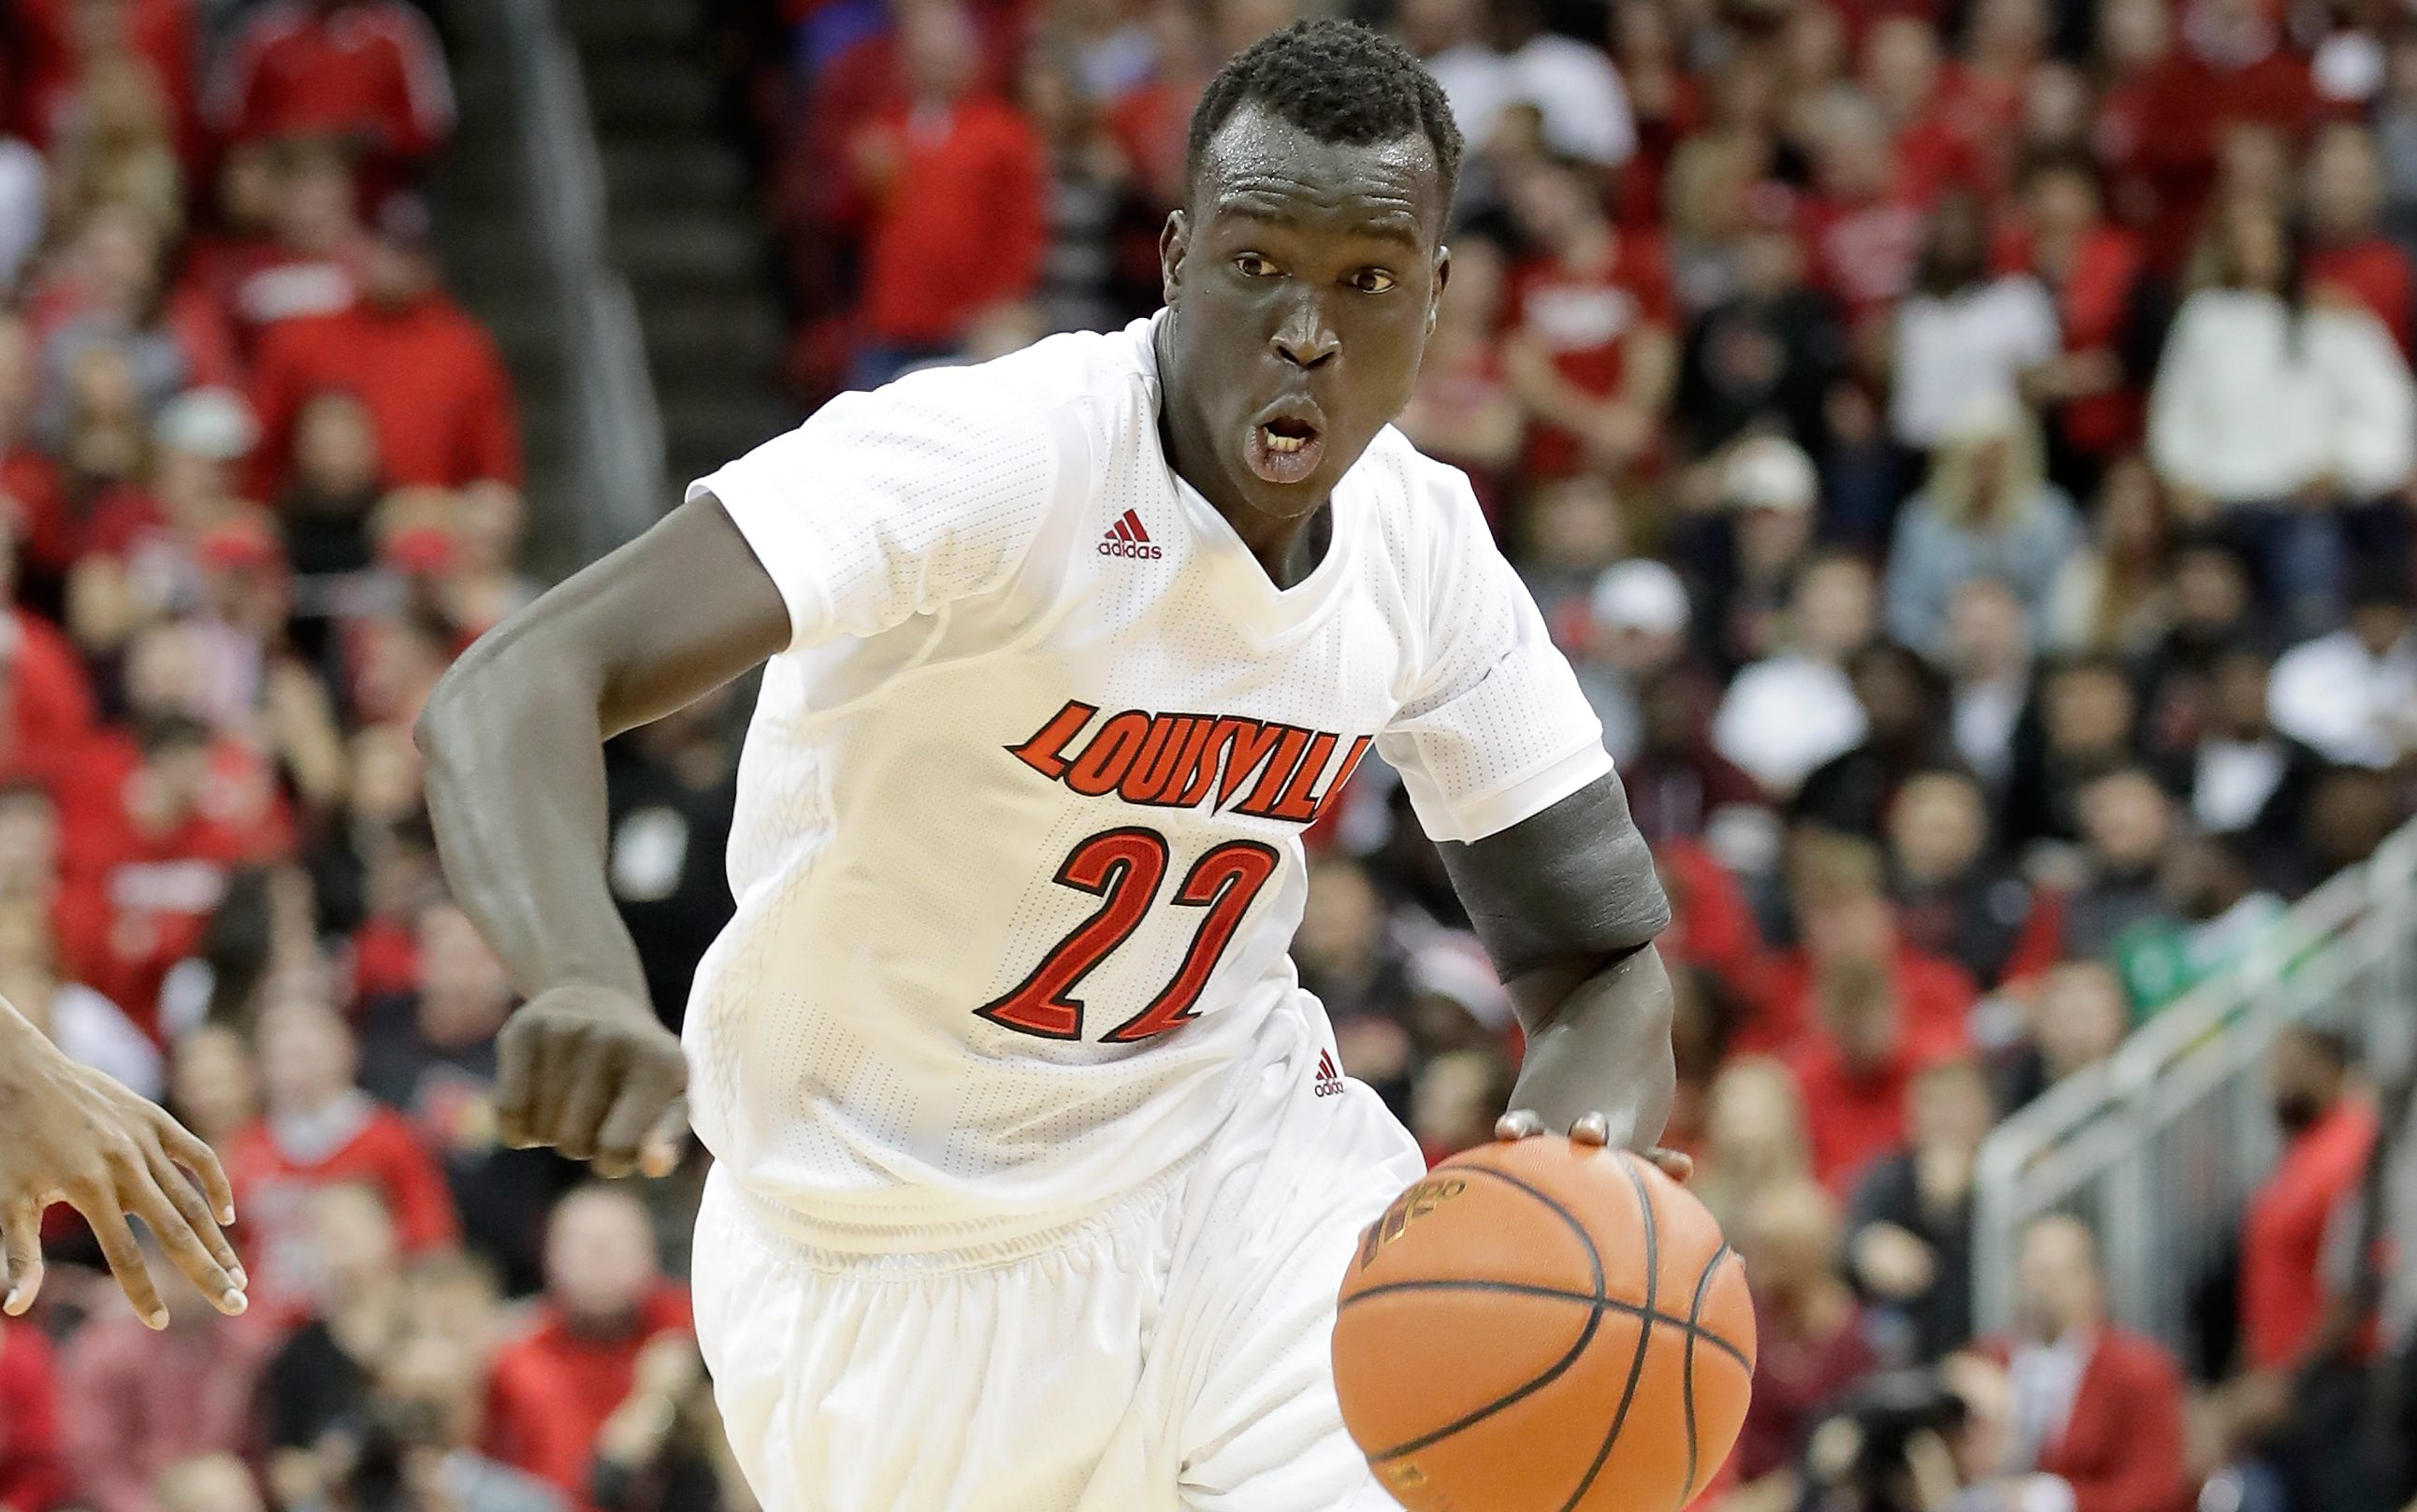 LOUISVILLE, KY - DECEMBER 21: Deng Adel #22 of the Louisville Cardinals dribbles the ball during the game against the Kentucky Wildcats at KFC YUM! Center on December 21, 2016 in Louisville, Kentucky. (Photo by Andy Lyons/Getty Images)